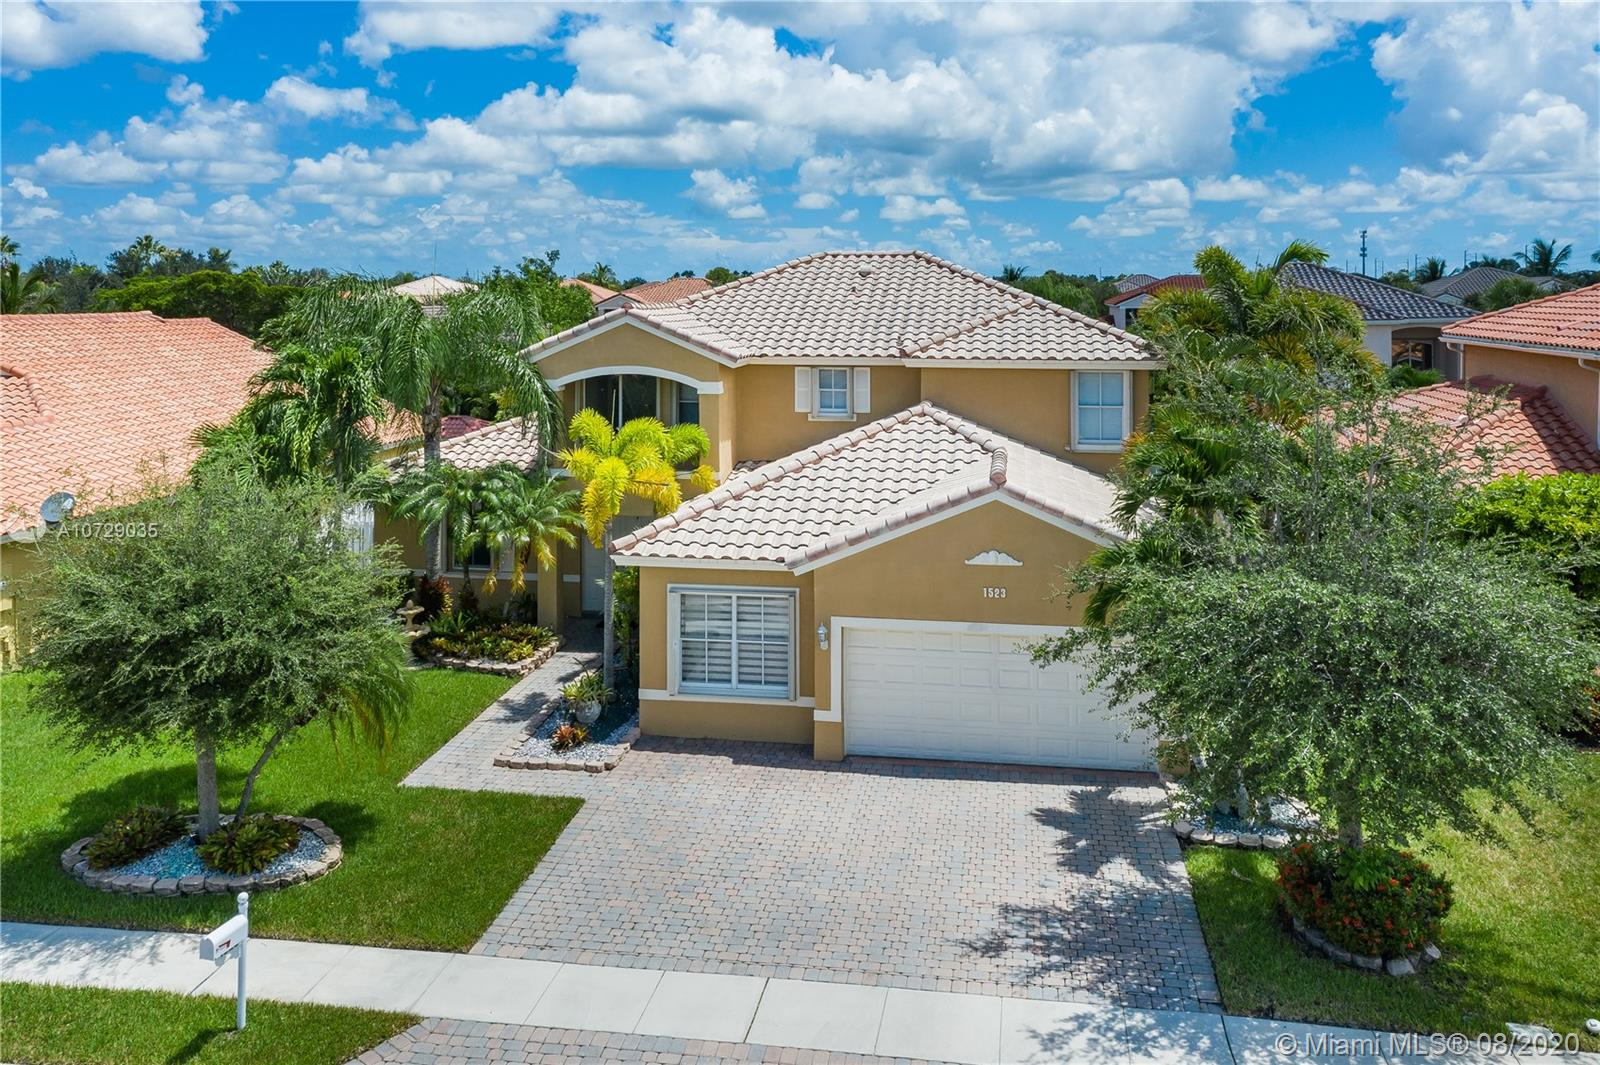 Property for sale at 1523 SW 191st Ln, Pembroke Pines,  Florida 33029